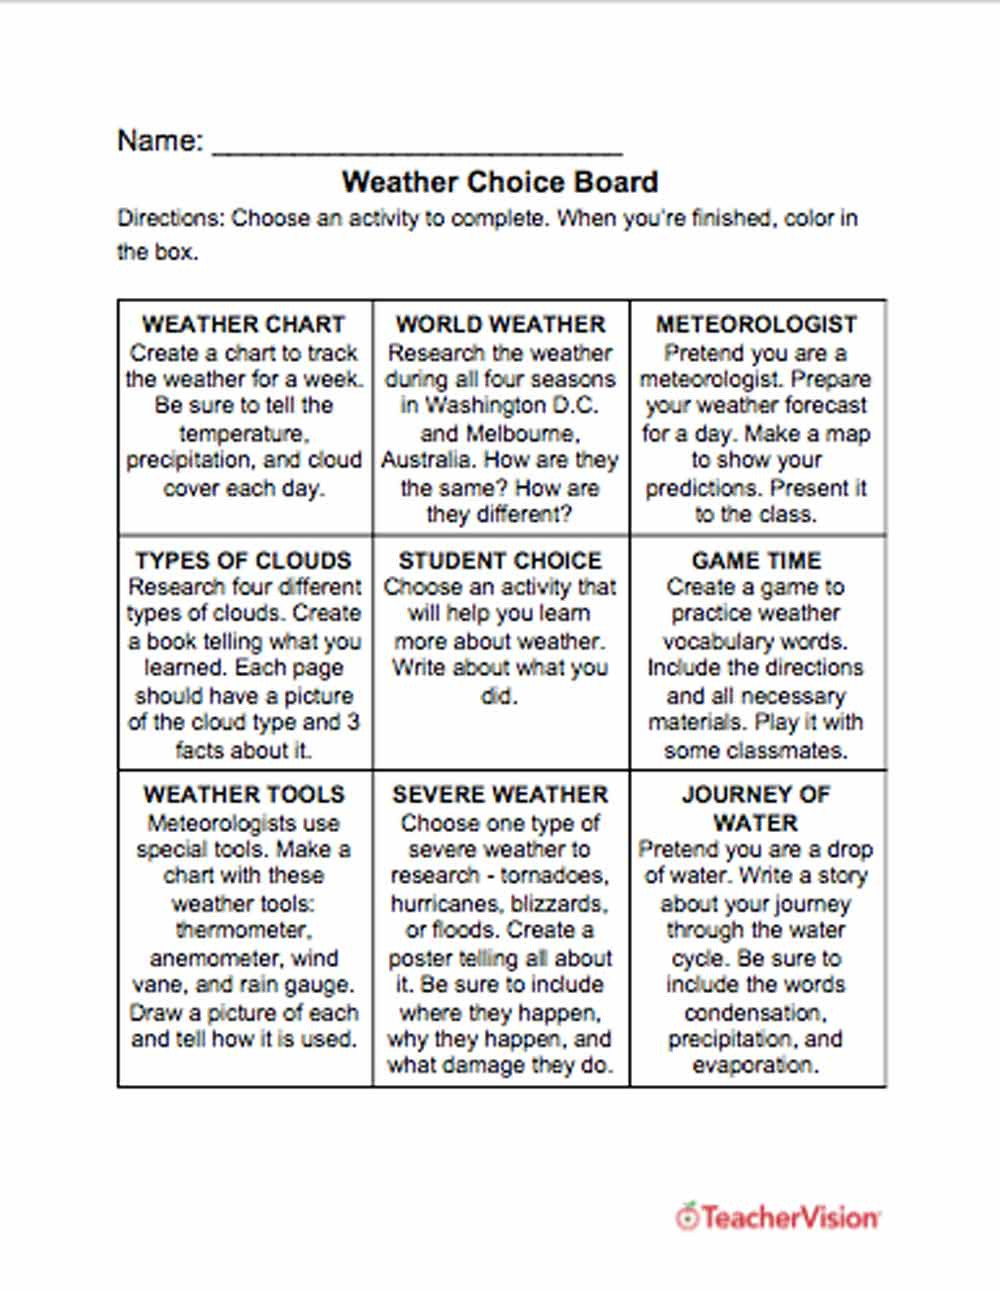 Water Cycle Worksheet 4th Grade Weather Choice Board Teachervision